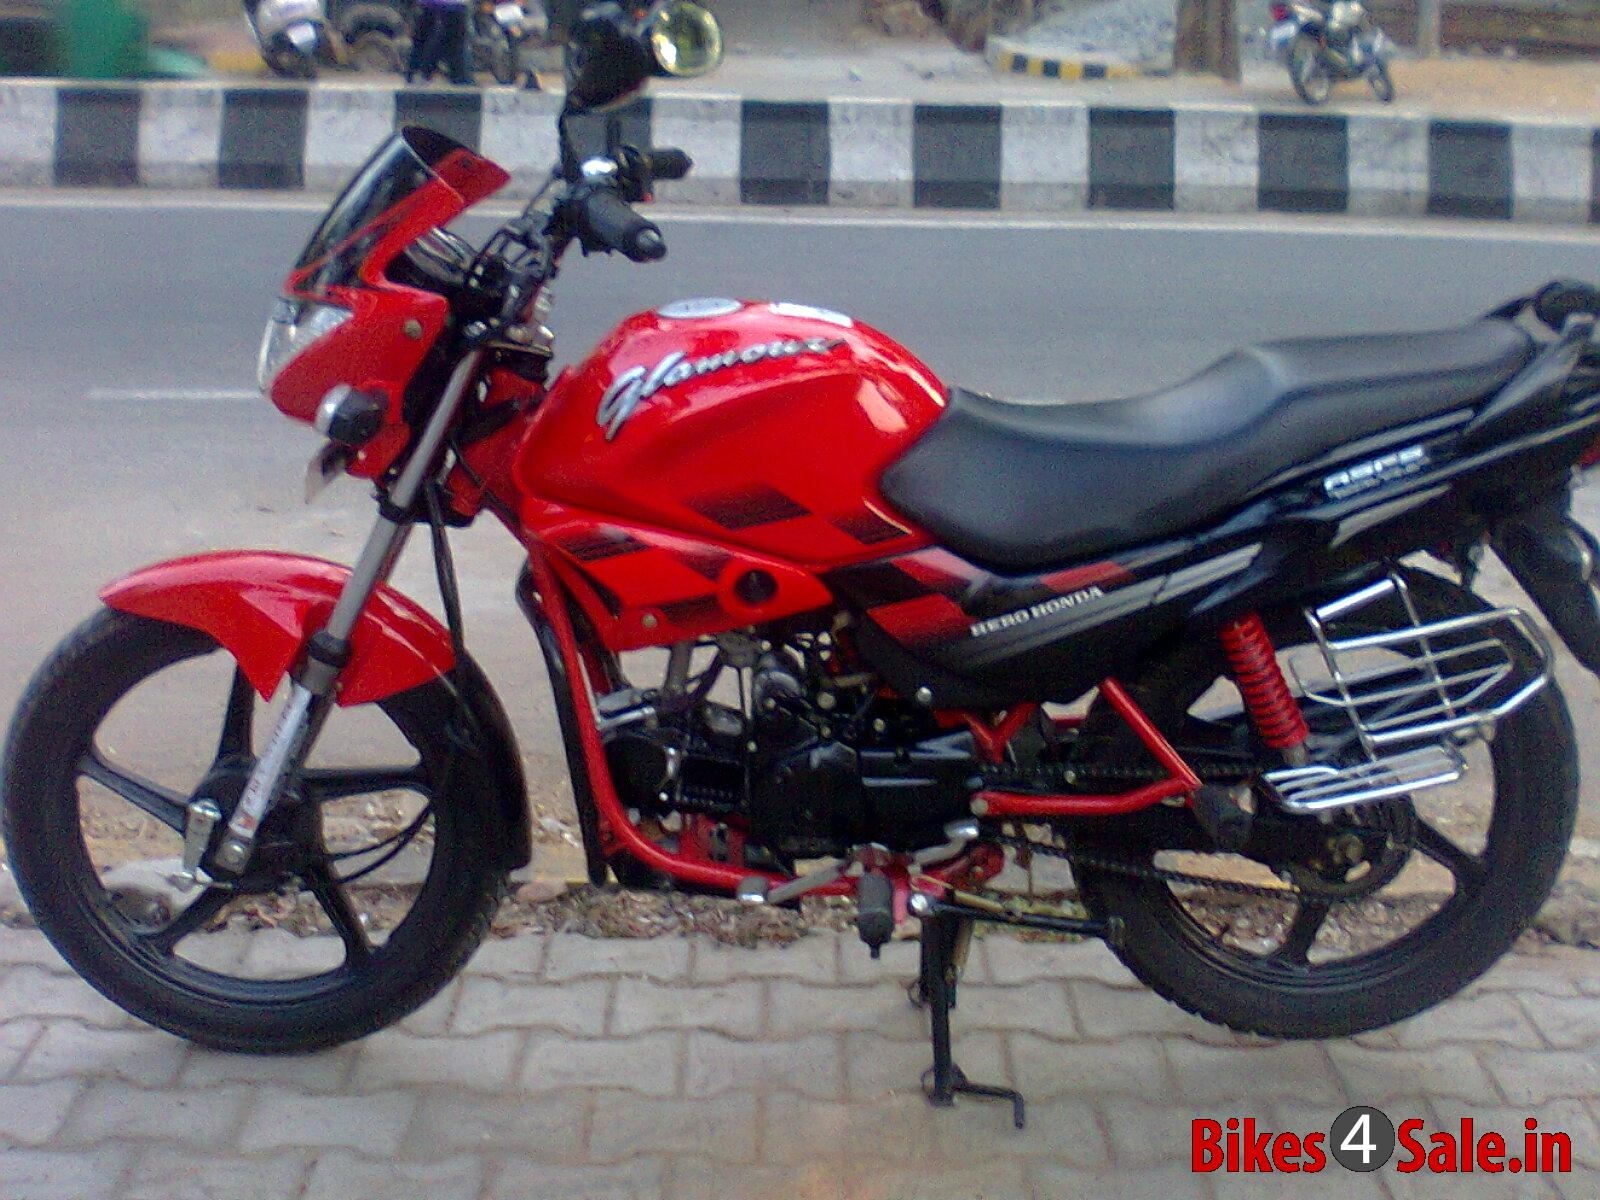 Hero Glamour Fi Affordable With Frequently Asked Wiring Diagram Of Honda Livo Cheap